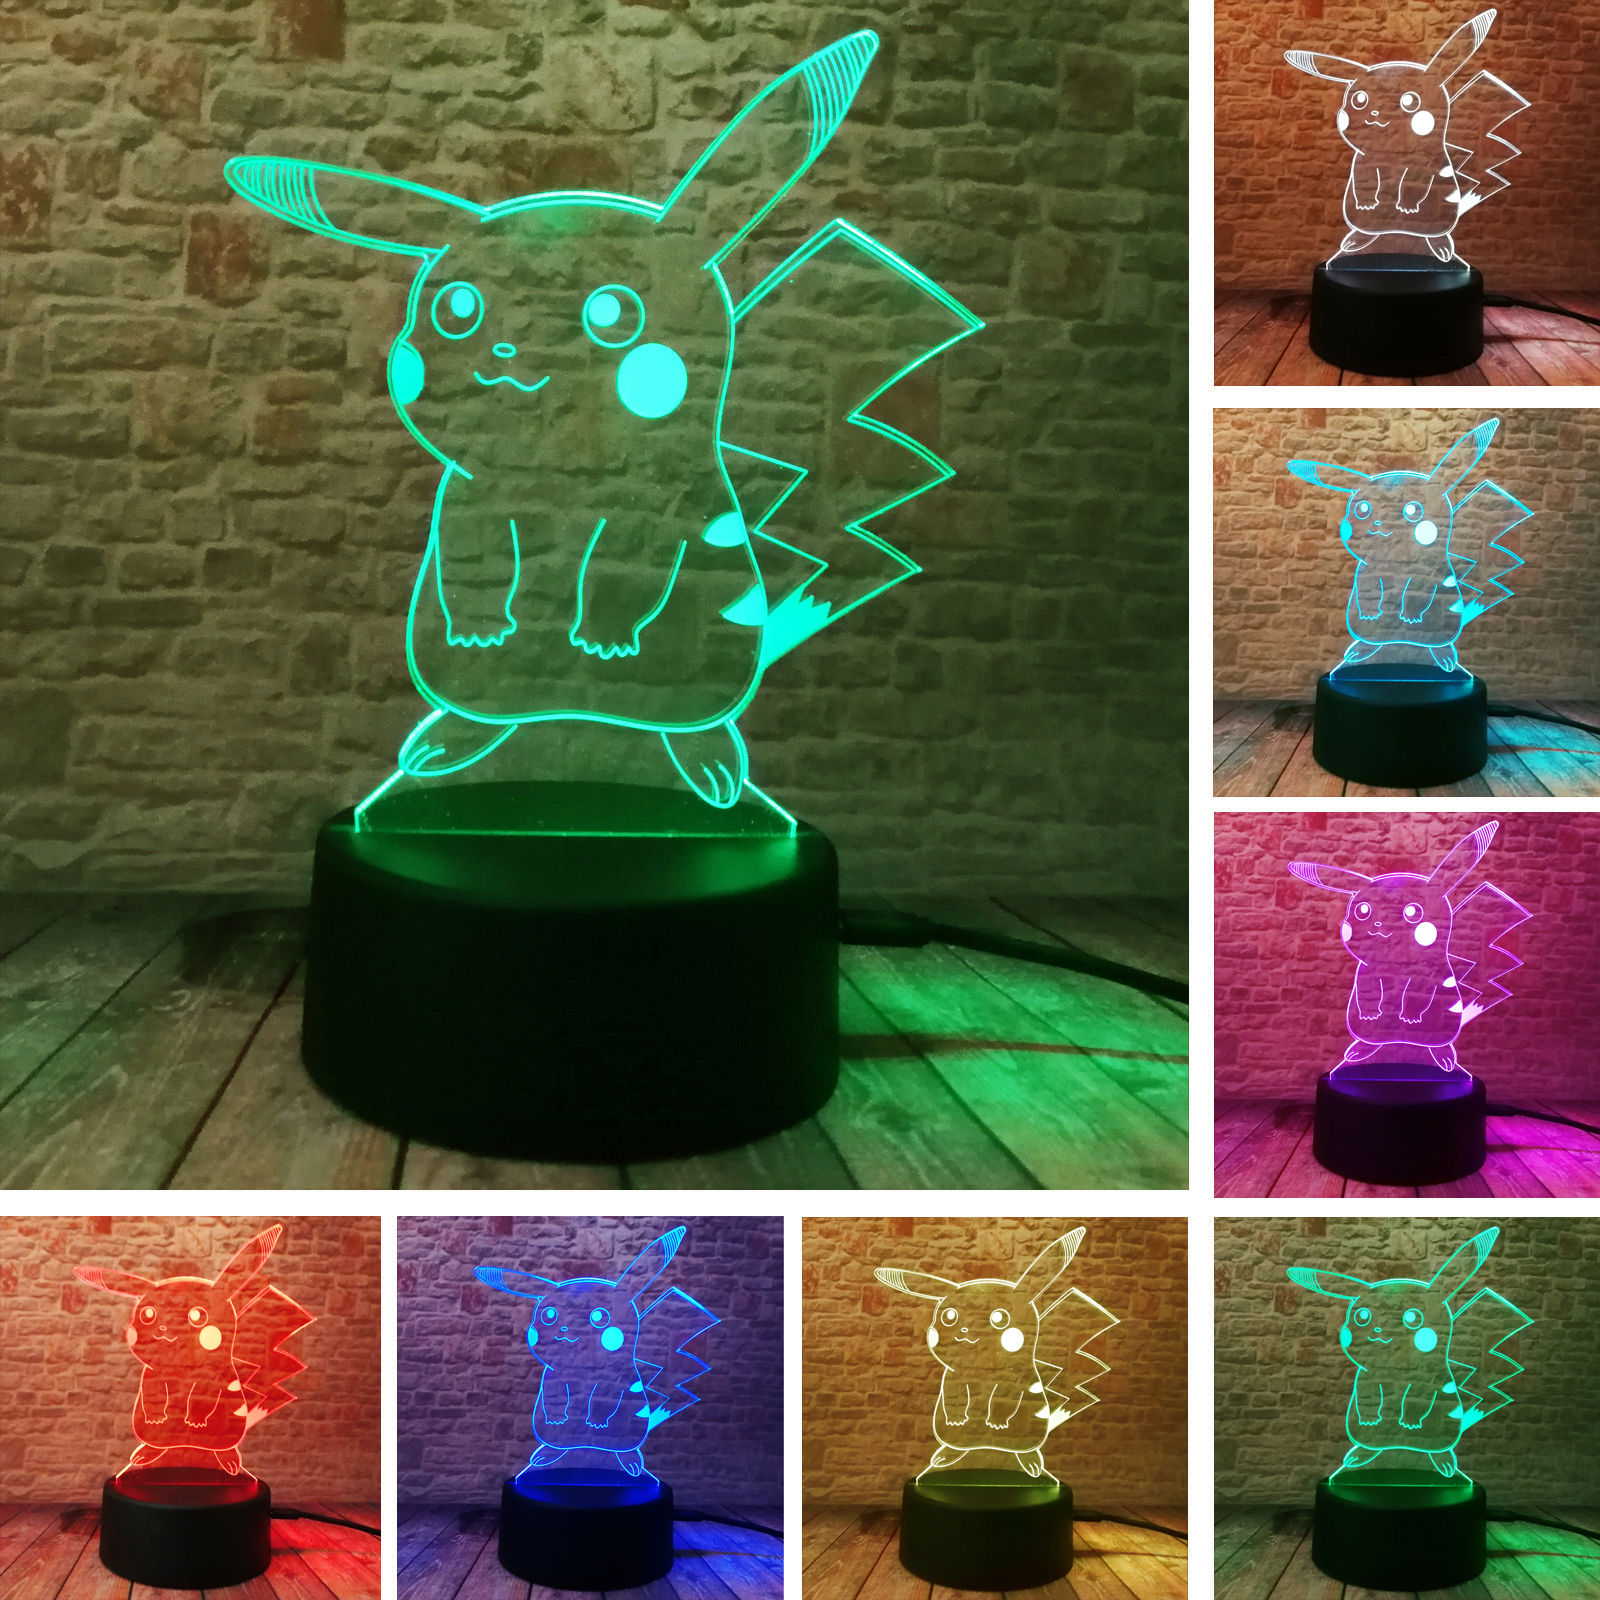 Hot Pokemon Go Action Figure 3D Atmosphere Illusion Night Light Pikachu Bedroom Kids Gift Creative 3D illusion Lamp Drop Shippng image